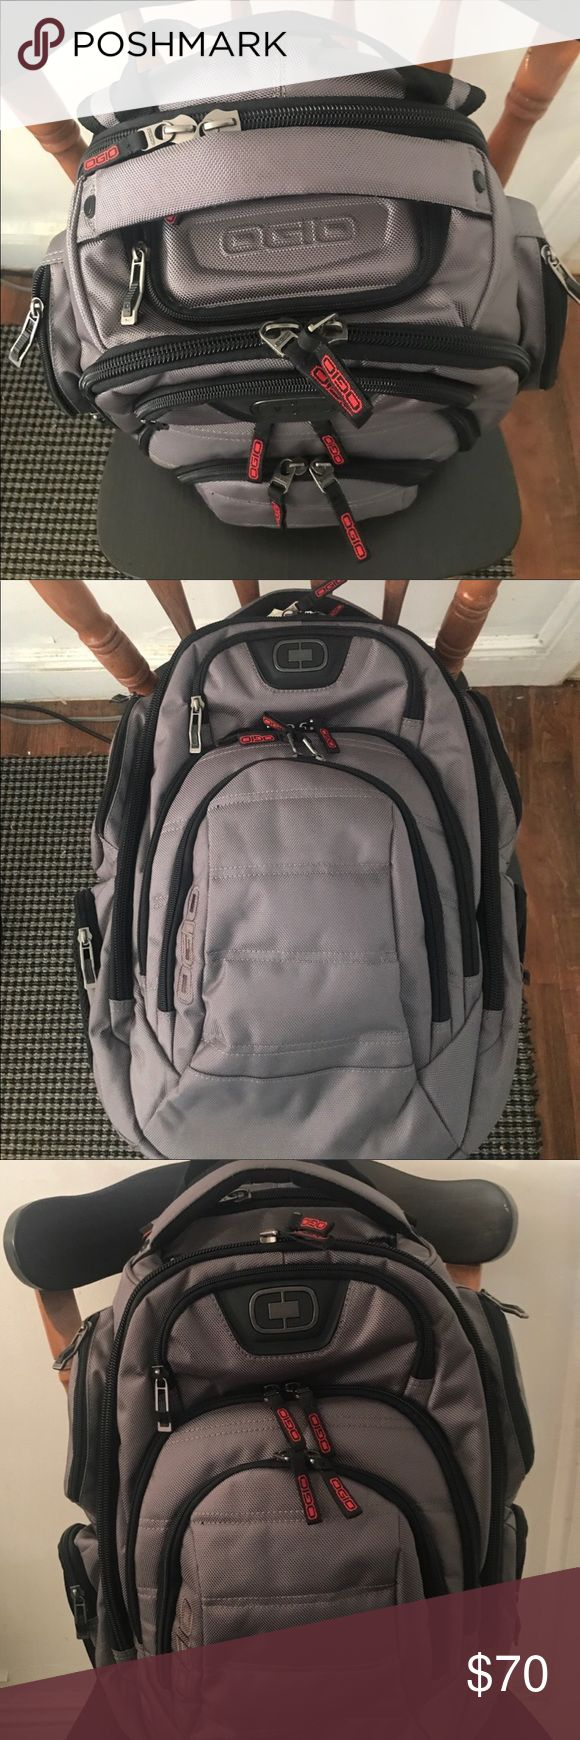 OGIO bag pack Excellent bag pack the office or university. It's new!!! OGIO Bags Backpacks